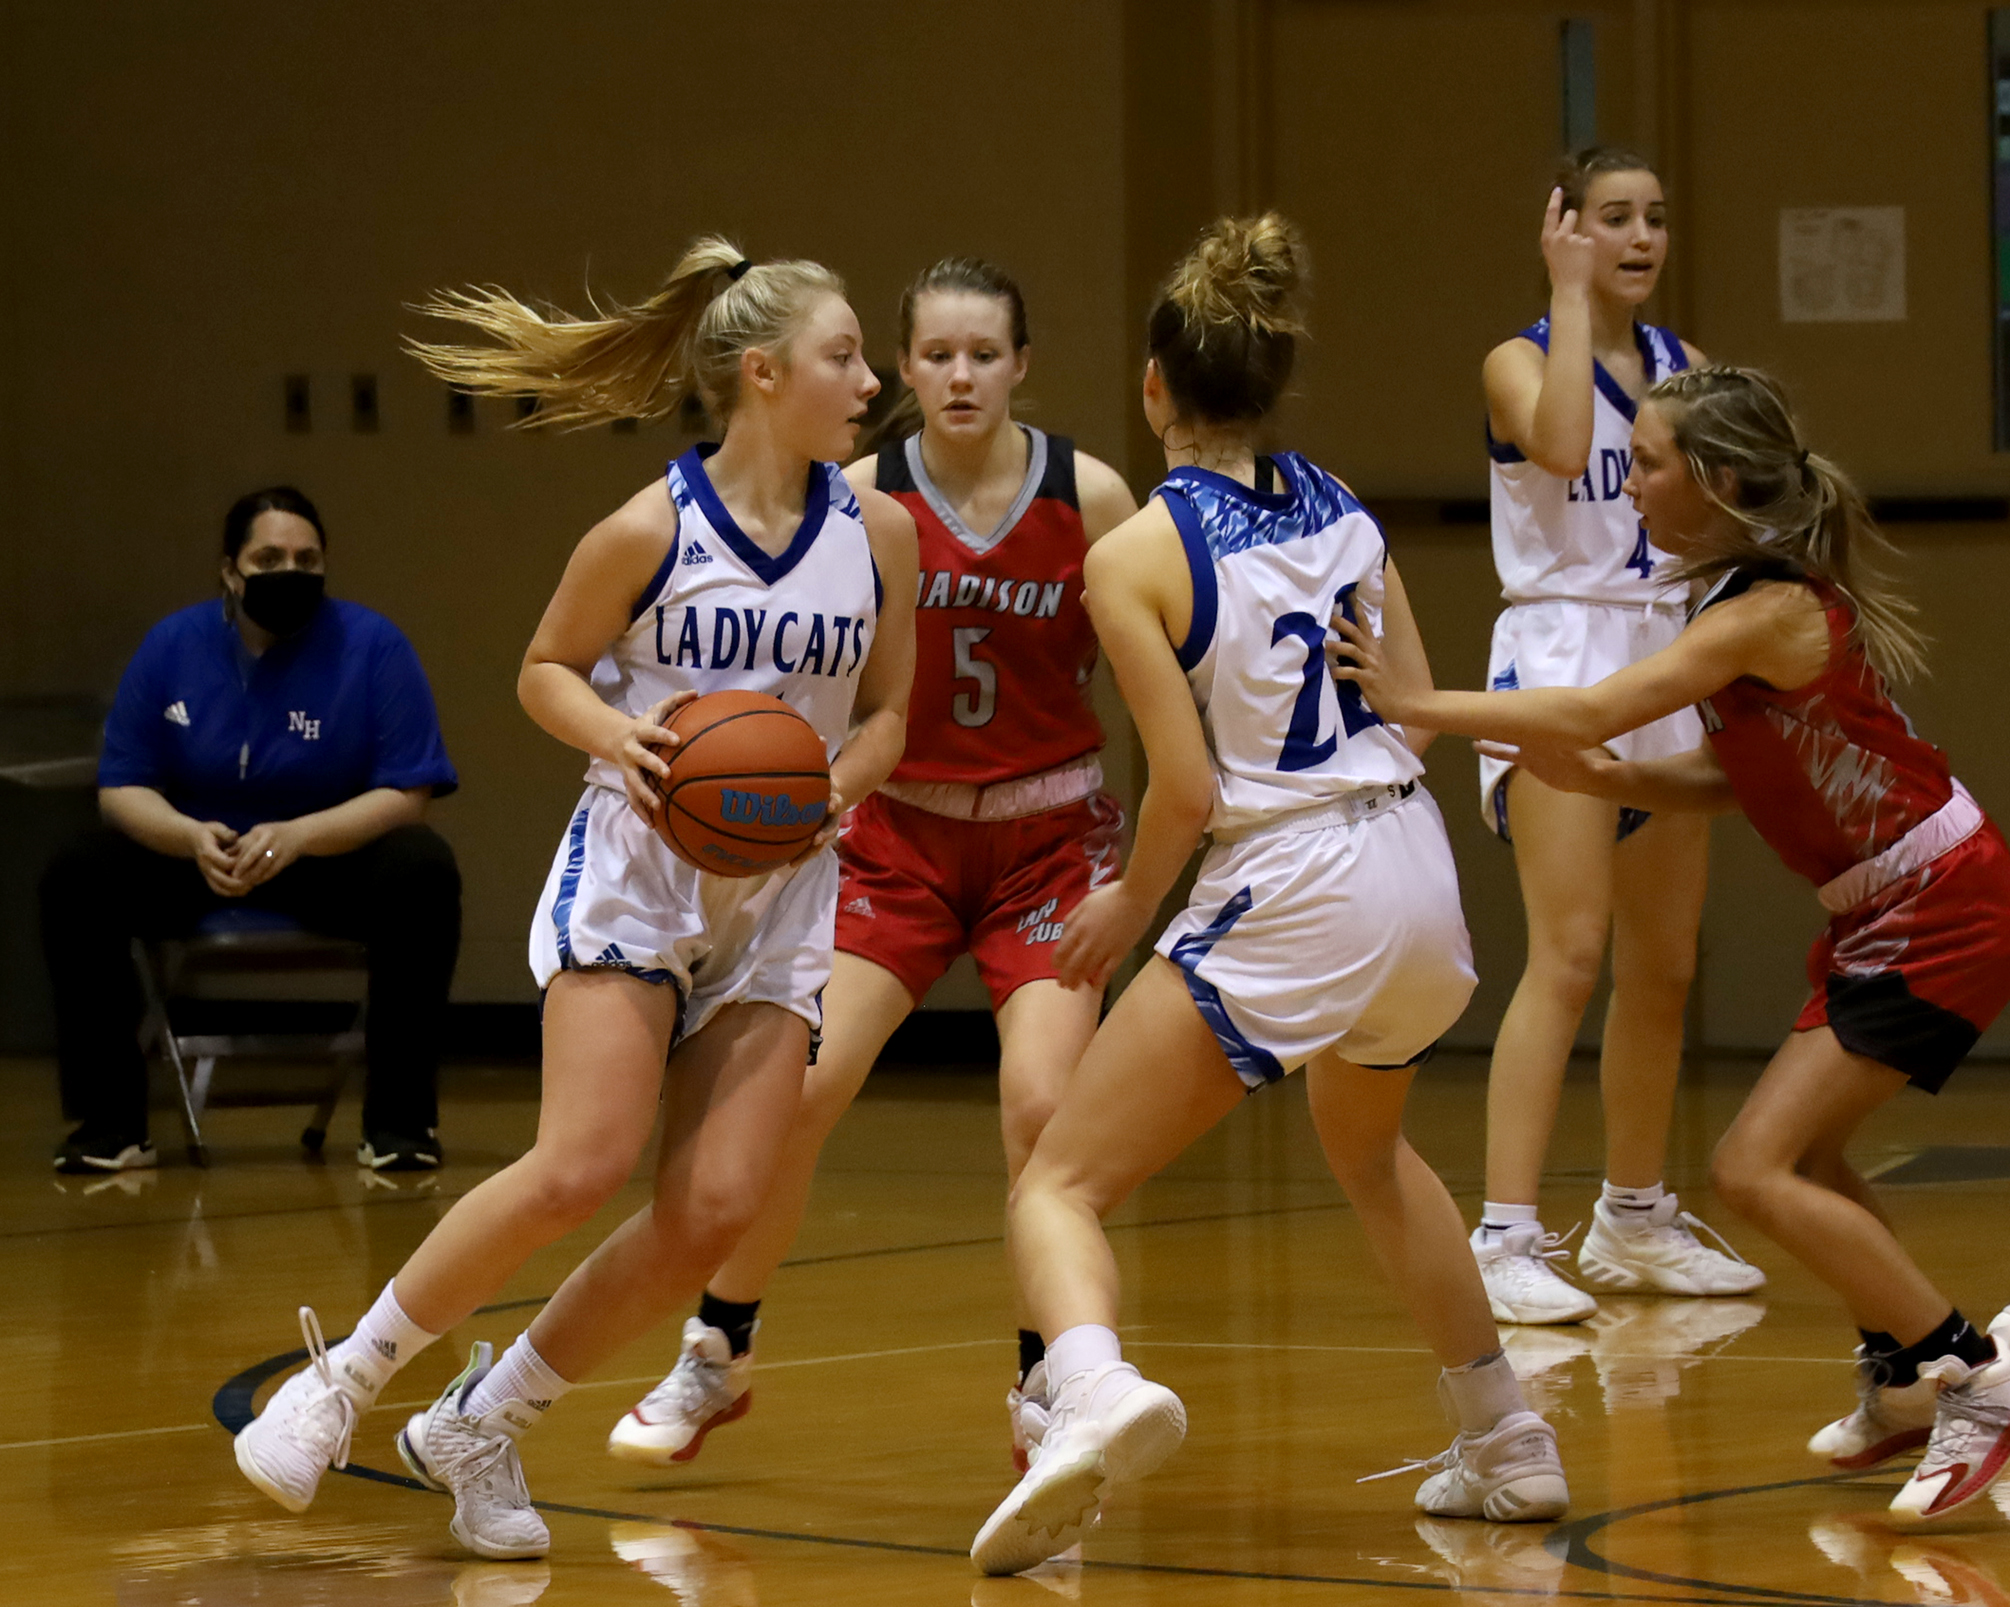 Madison girls get past Lady Cats